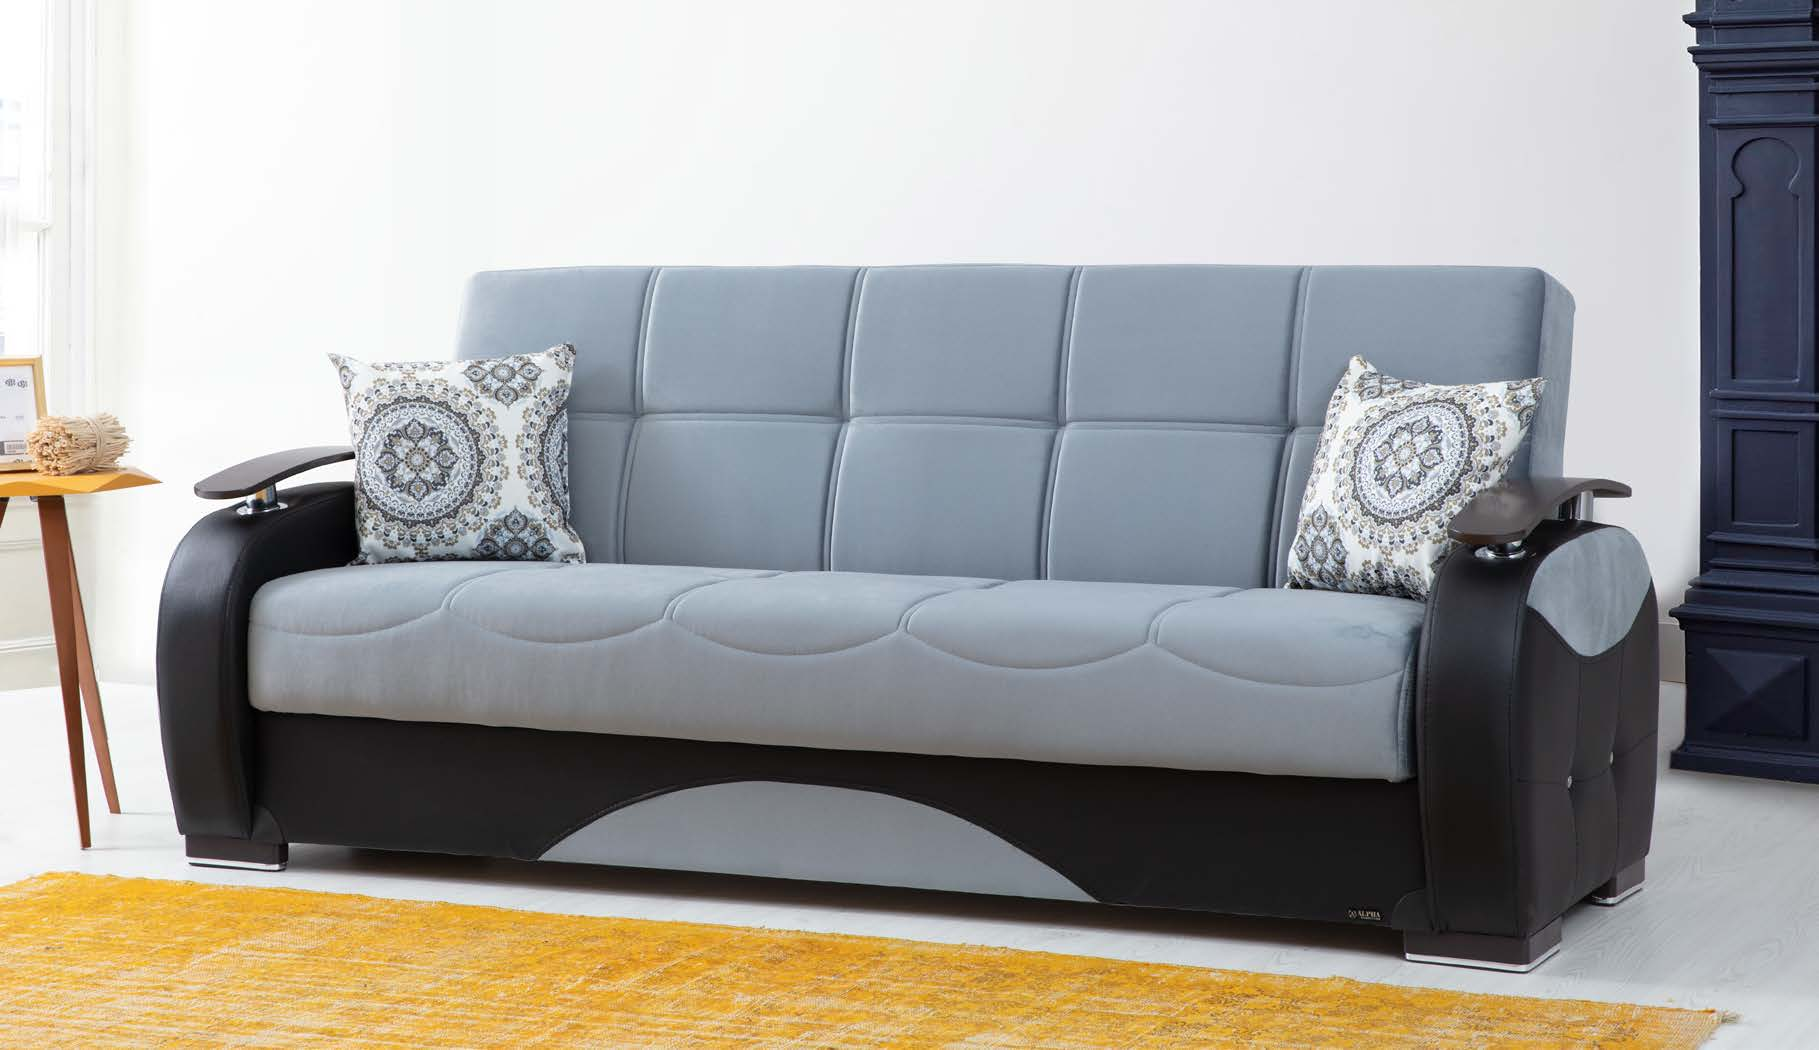 Black Pu Leather W Wood Arm Sofa Bed